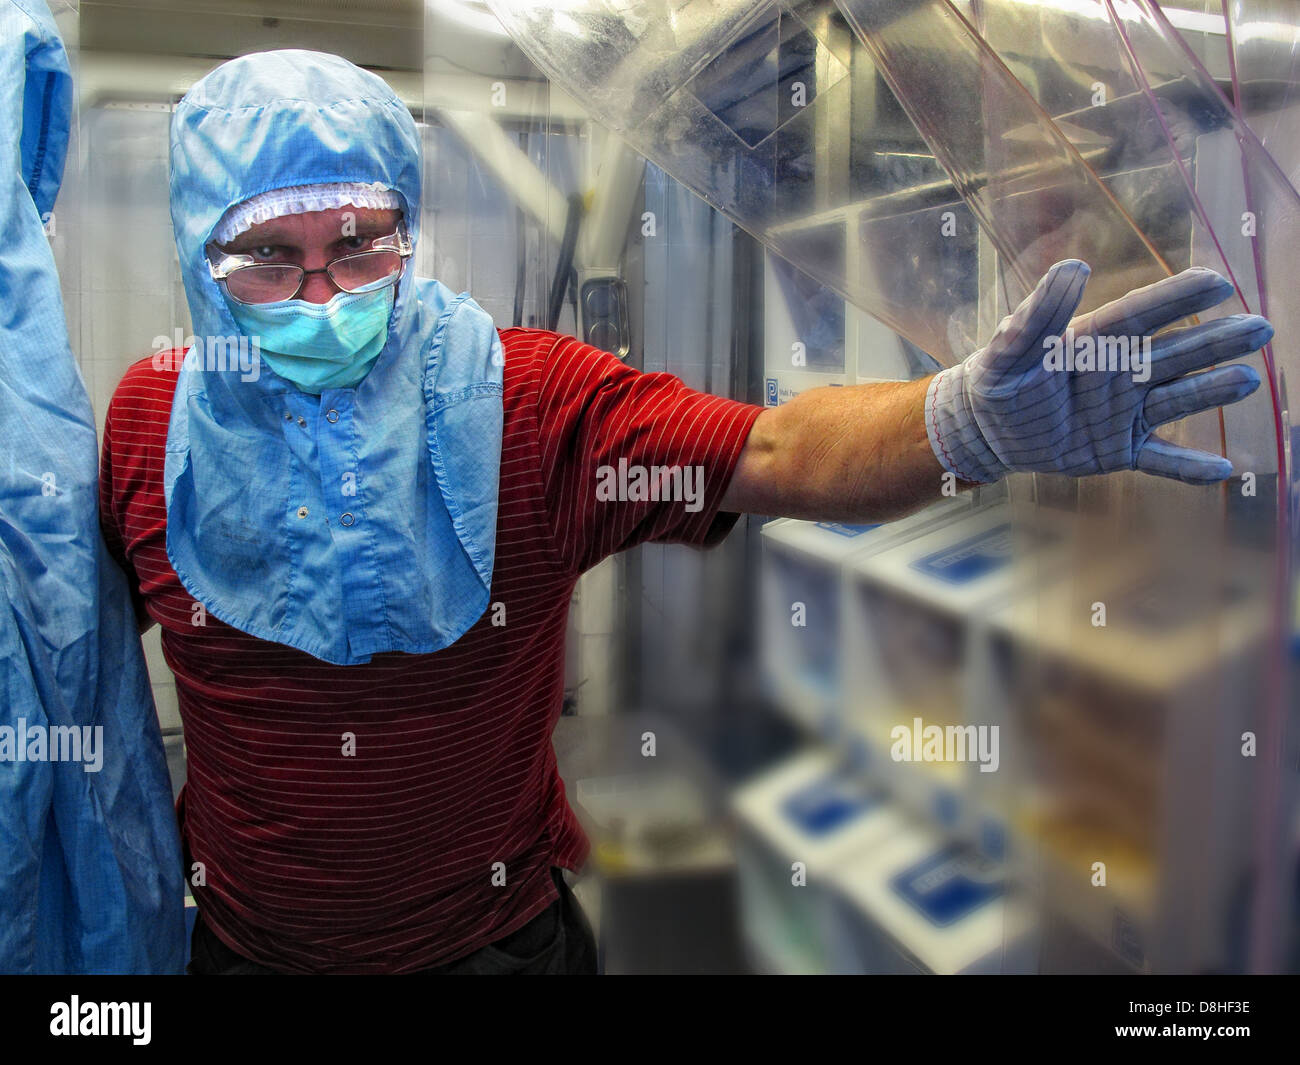 England,English,British,research,researcher,mask,safe,glove,gloves,hand,protect,protective,laboratory,man,person,Runcorn,ln,lane,industry,WA44AD,WA4,4AD,tech,technology,high,leading,Scitech,Sci-Tech,Digital,bio,biological,biomedical,trial,experiment,experiments,test,testing,Gotonysmith supercomputing supercomputers,gotonysmith,Buy Pictures of,Buy Images Of,PPE,Personal Protective Equipment